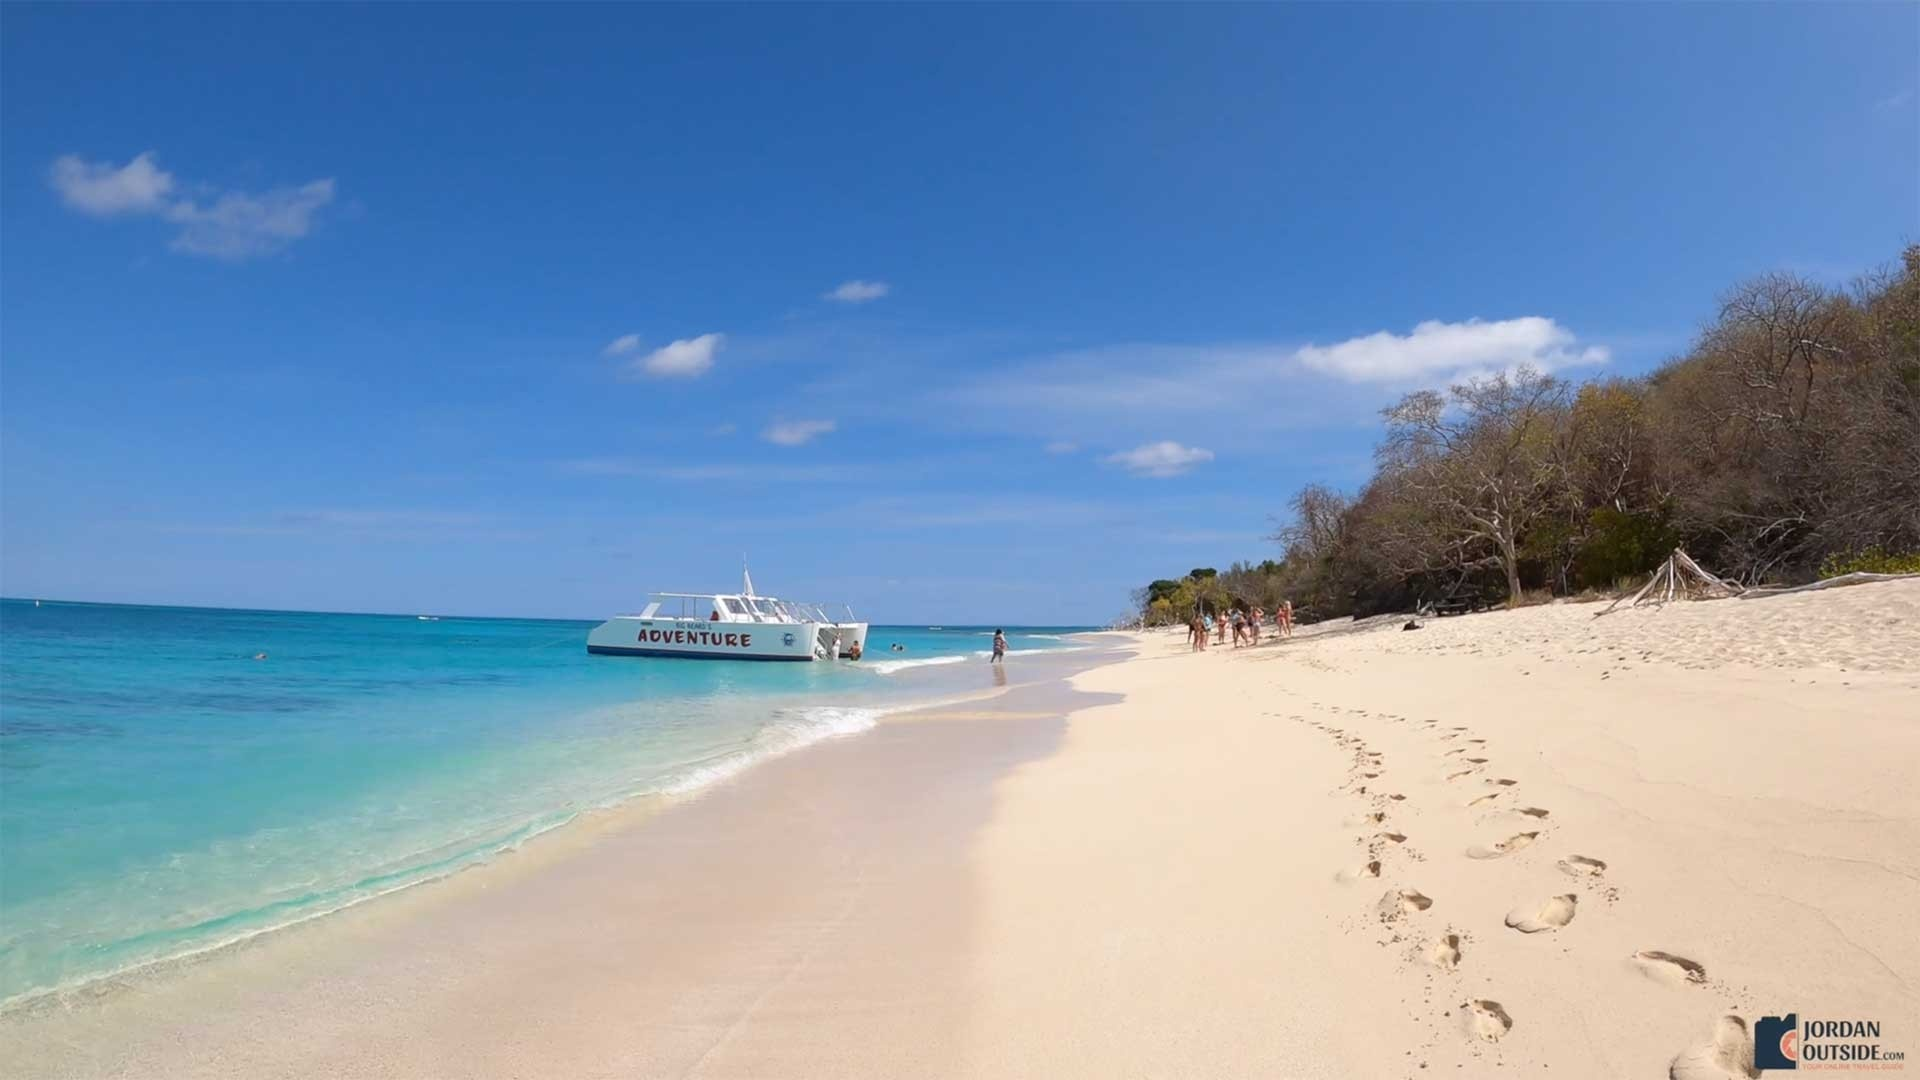 Go past Isaac's Bay Beach to get to Jack's Bay Beach, St. Croix